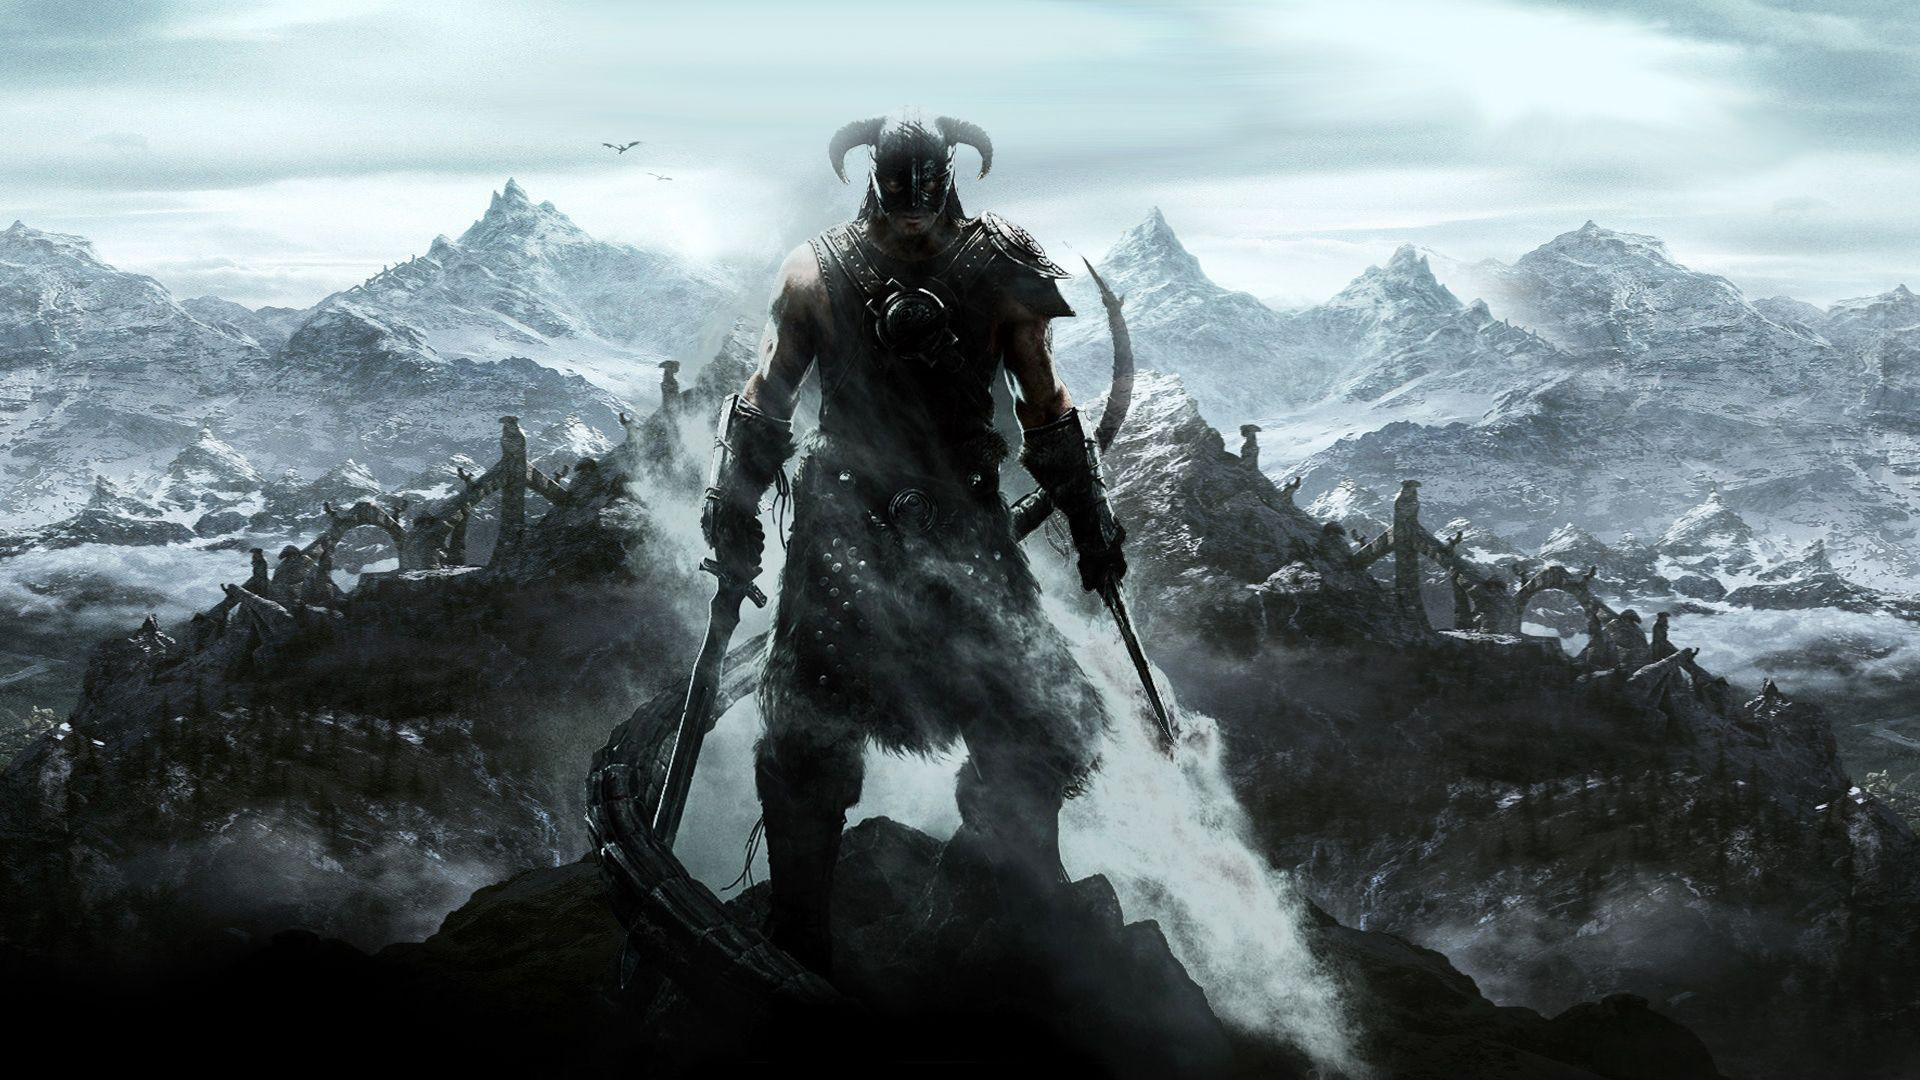 Res: 1920x1080, HD Skyrim Images | Download Free - 229464330